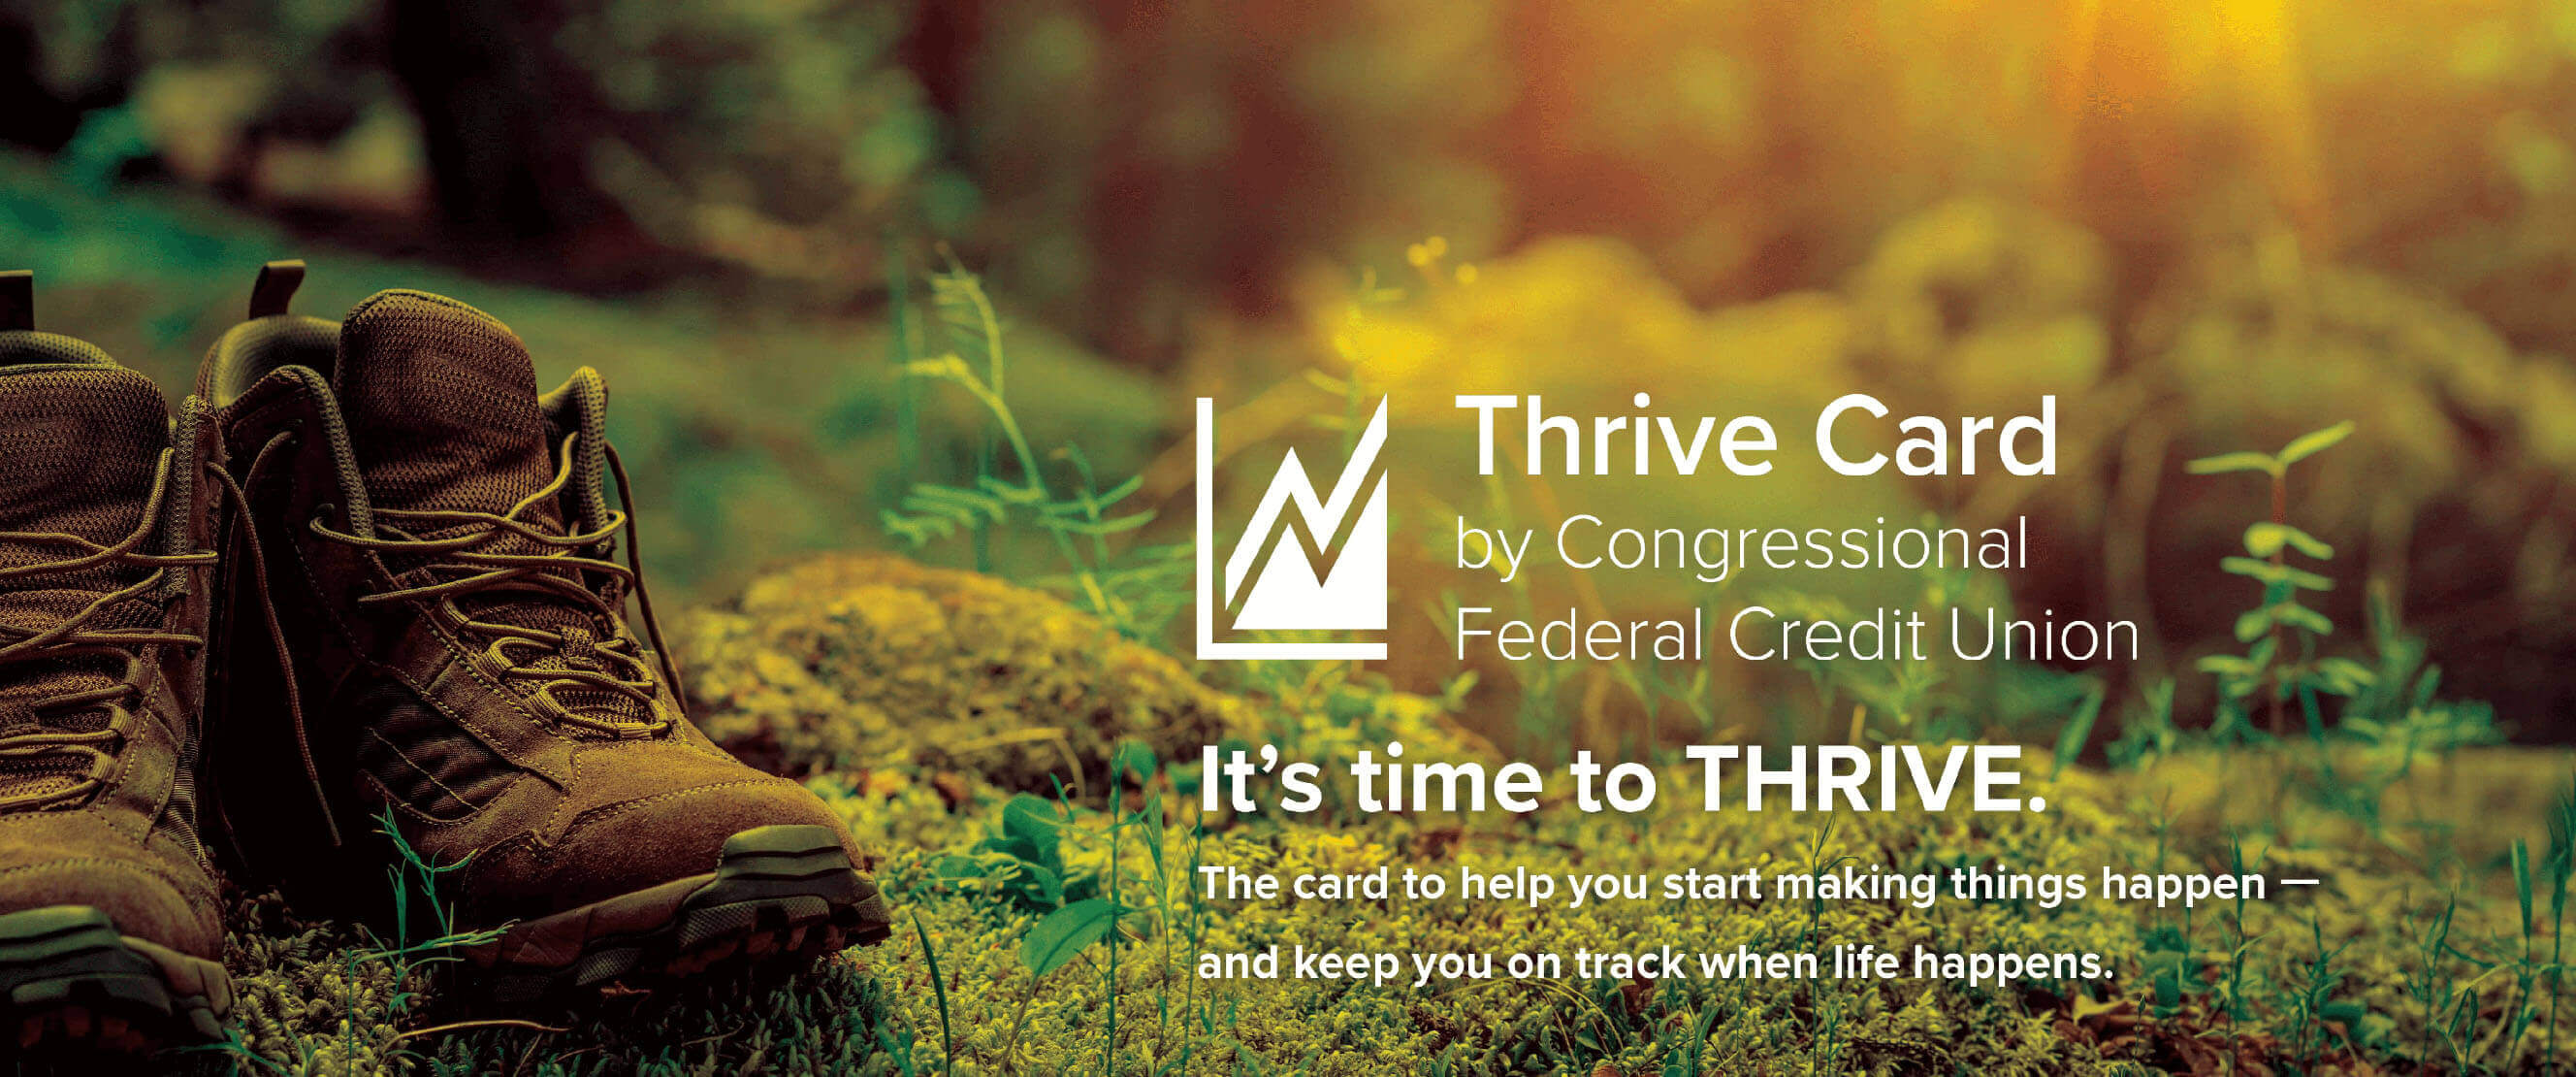 Thrive Card by Congressional Federal